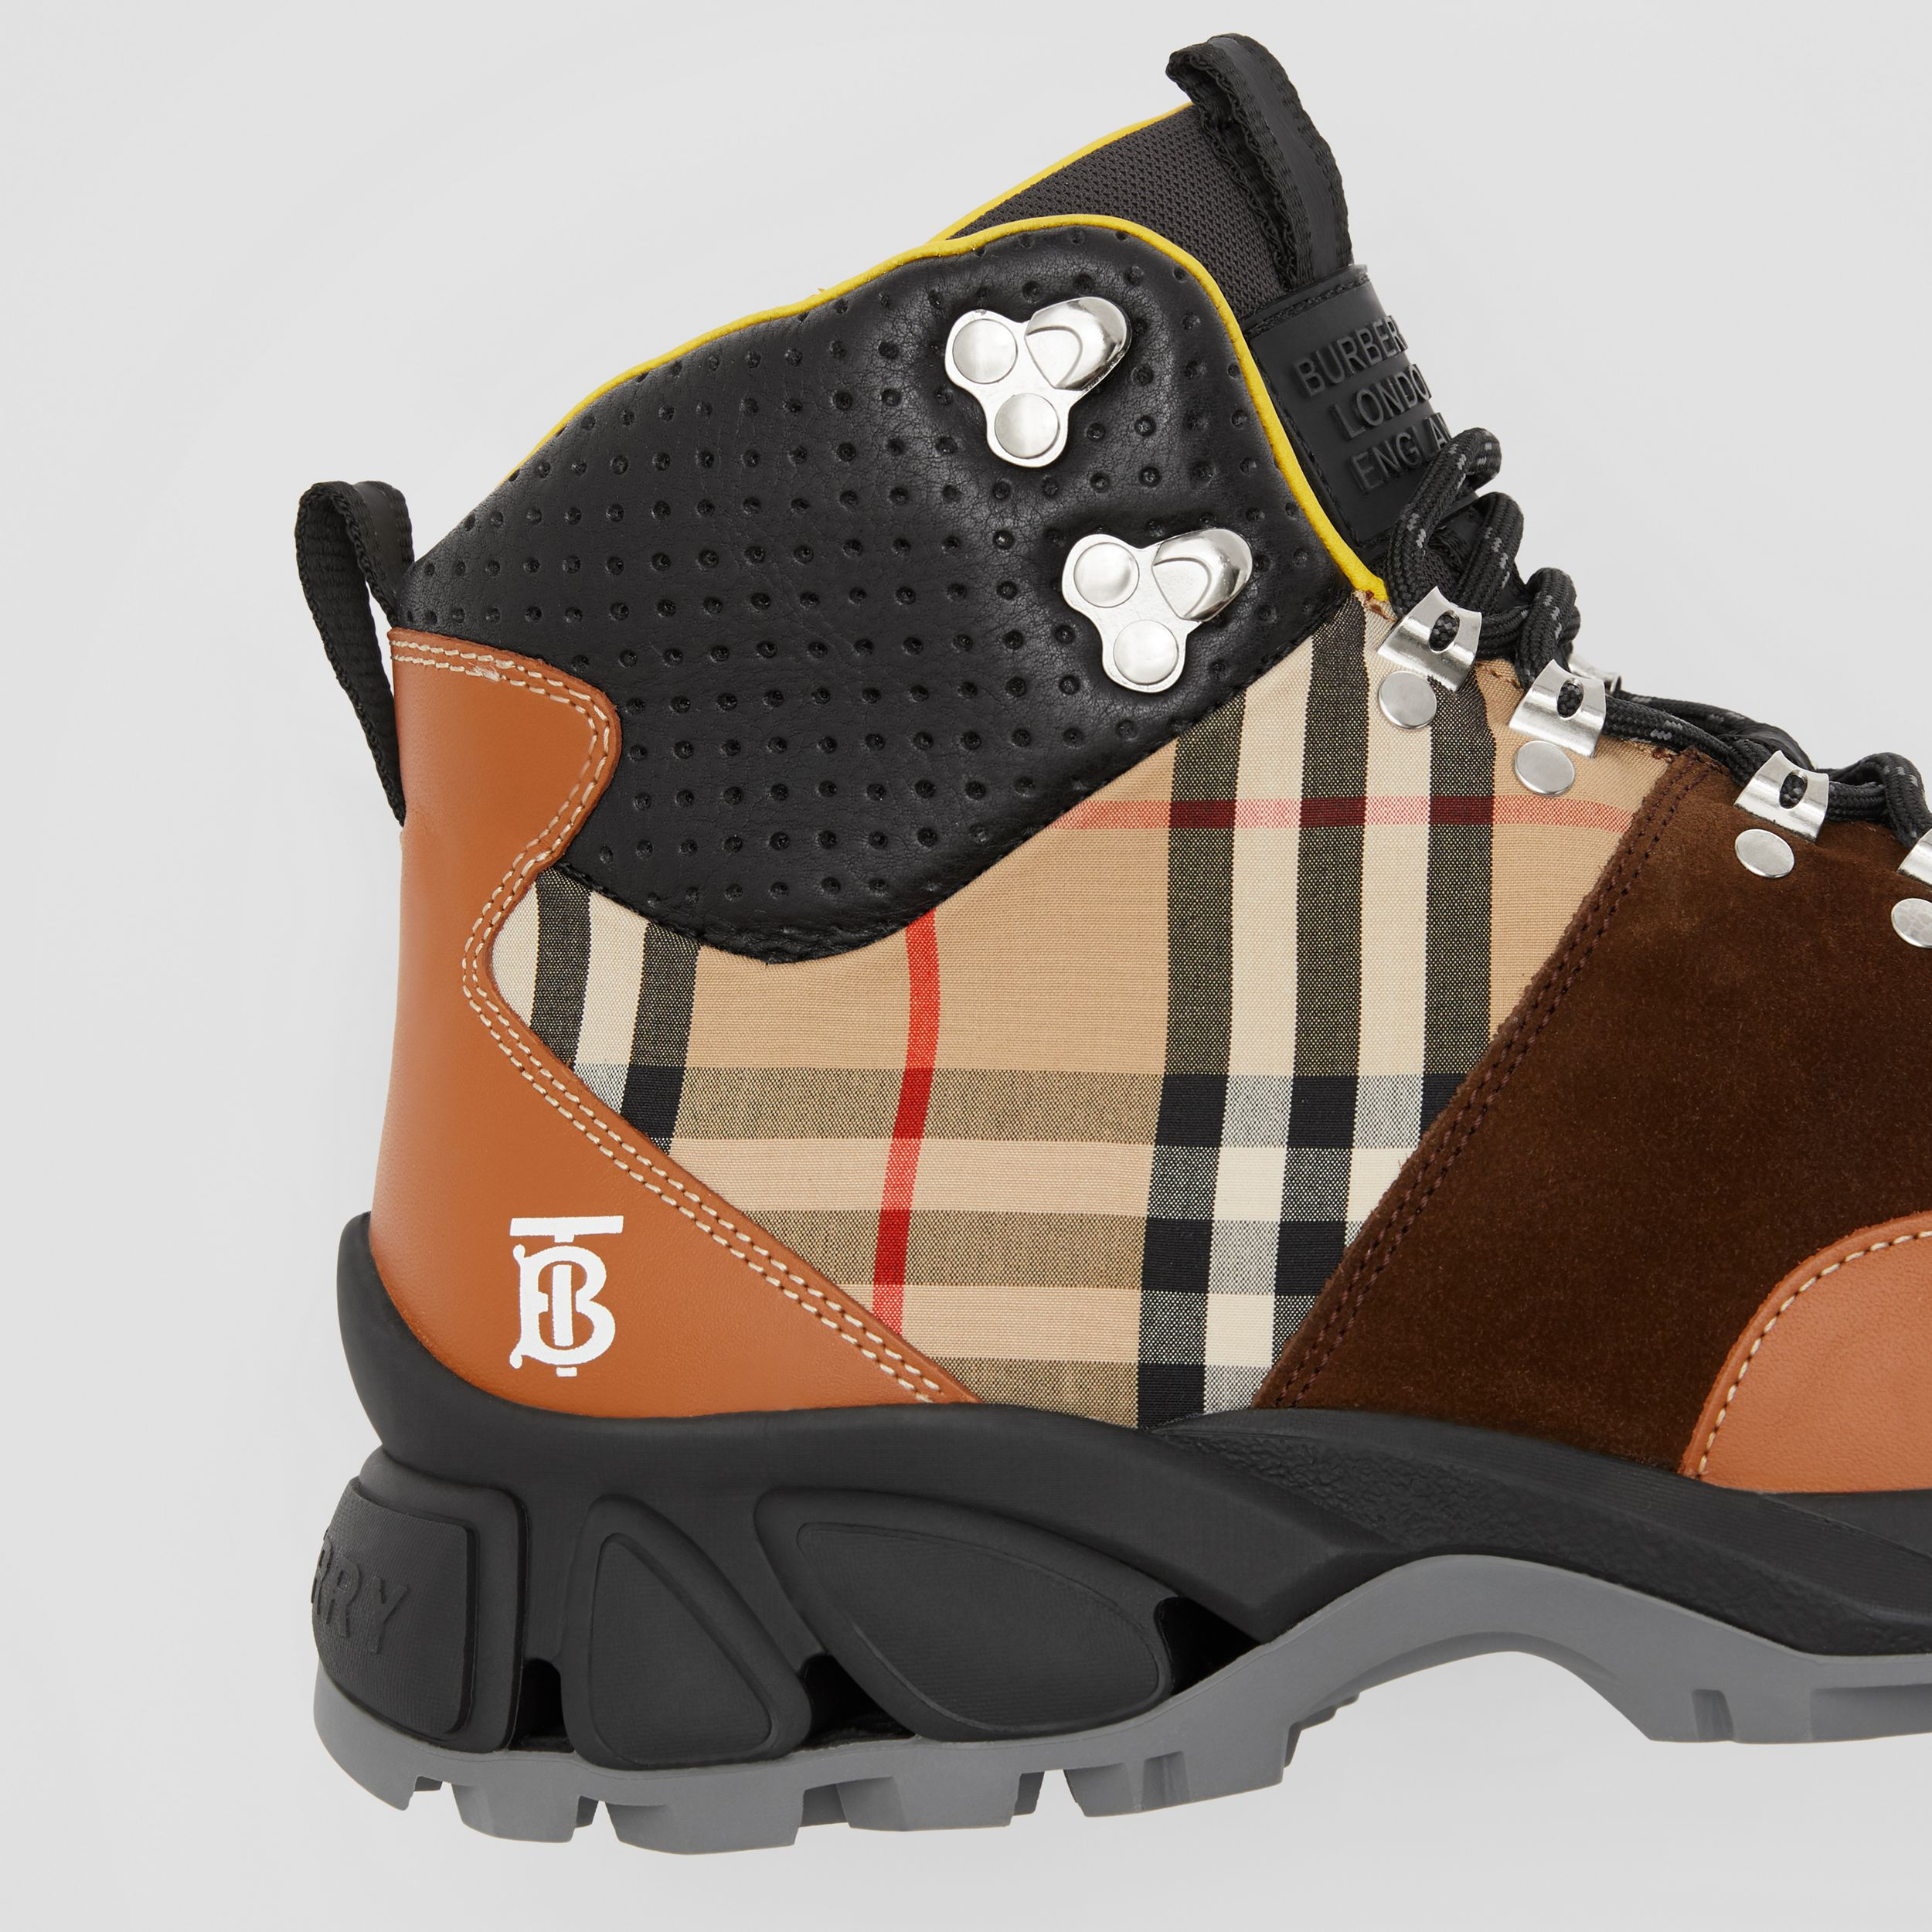 Leather, Vintage Check Cotton and Suede Tor Boots in Tan Mix - Men | Burberry Australia - 2